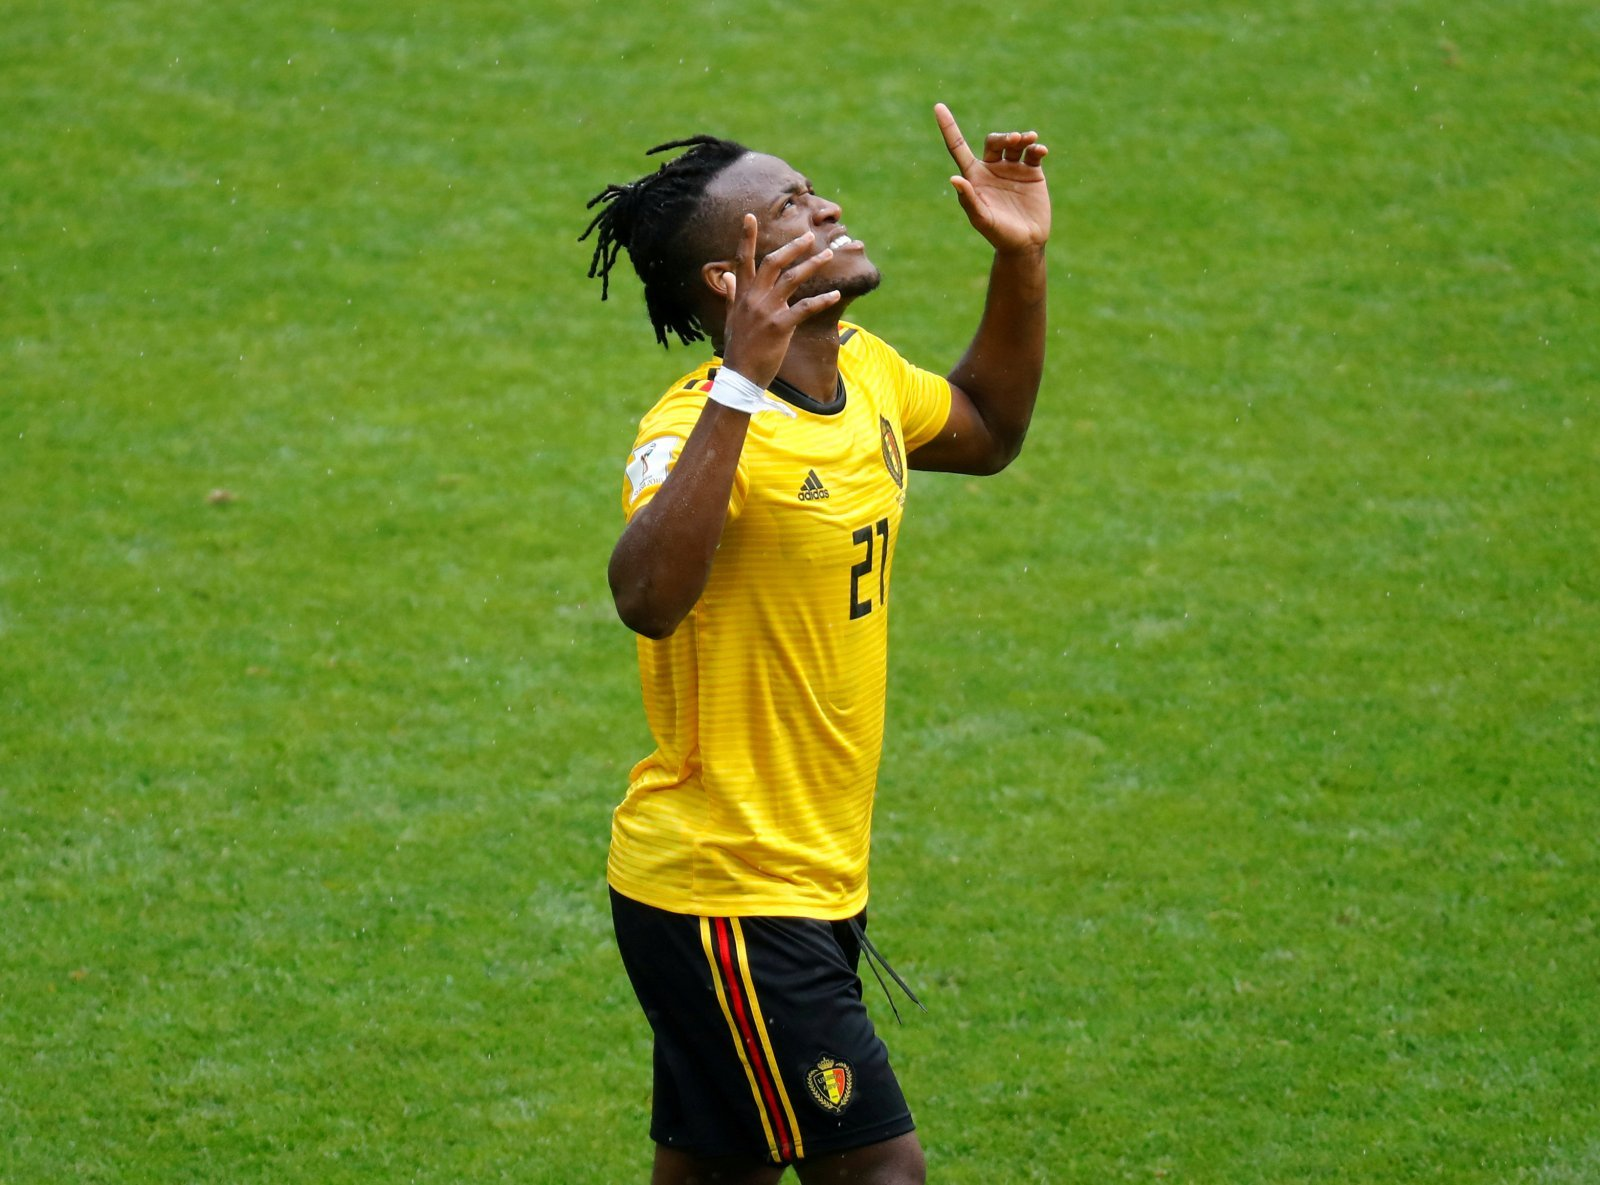 West Ham should target Michy Batshuayi if Maxi Gomez is too expensive